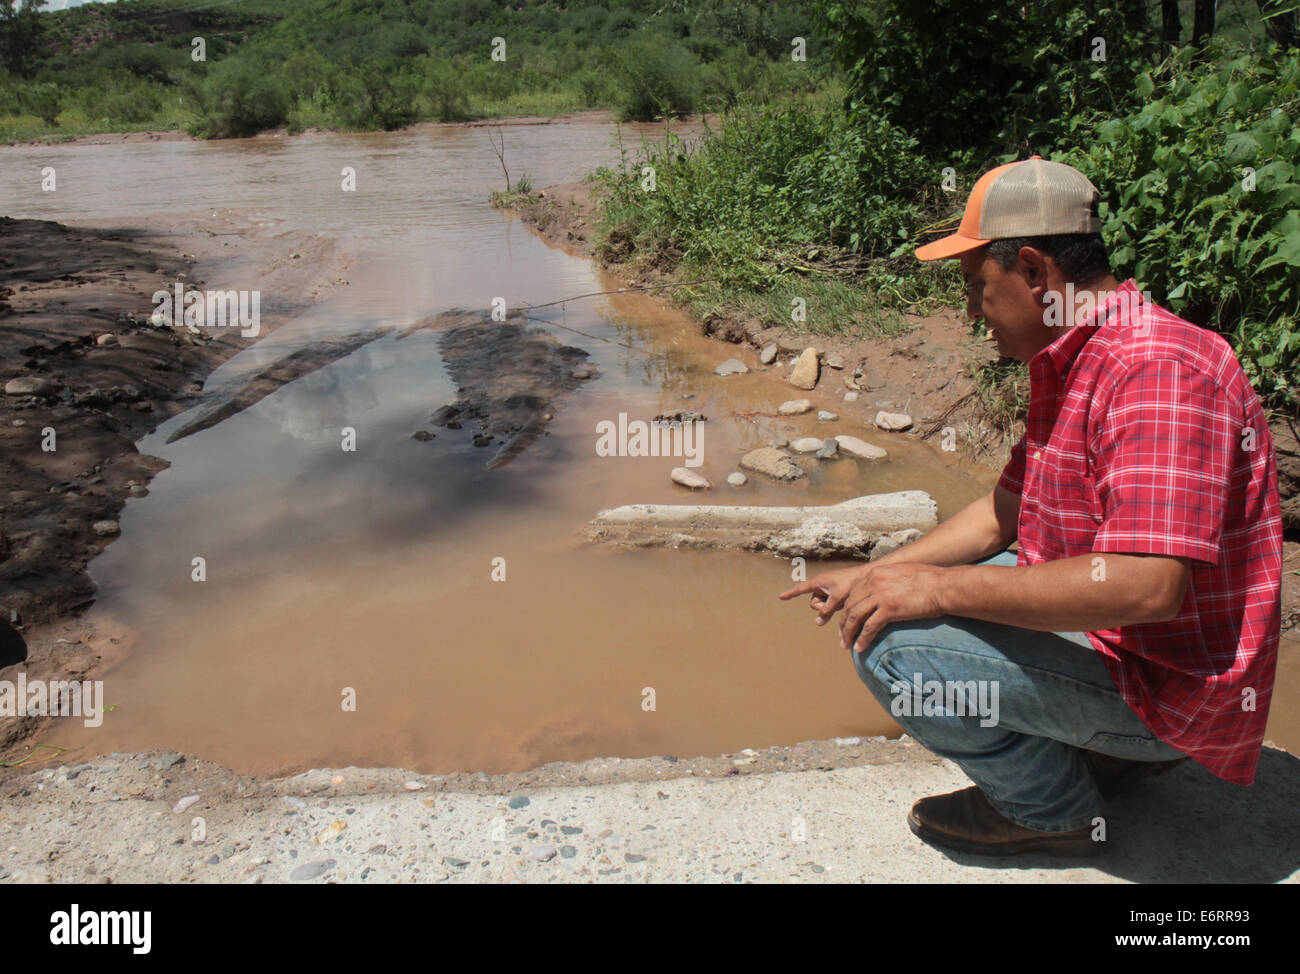 (140830) -- SONORA, Aug. 30, 2014 (Xinhua) -- Image taken on Aug. 20, 2014, shows a farmer pointing traces of toxic - Stock Image